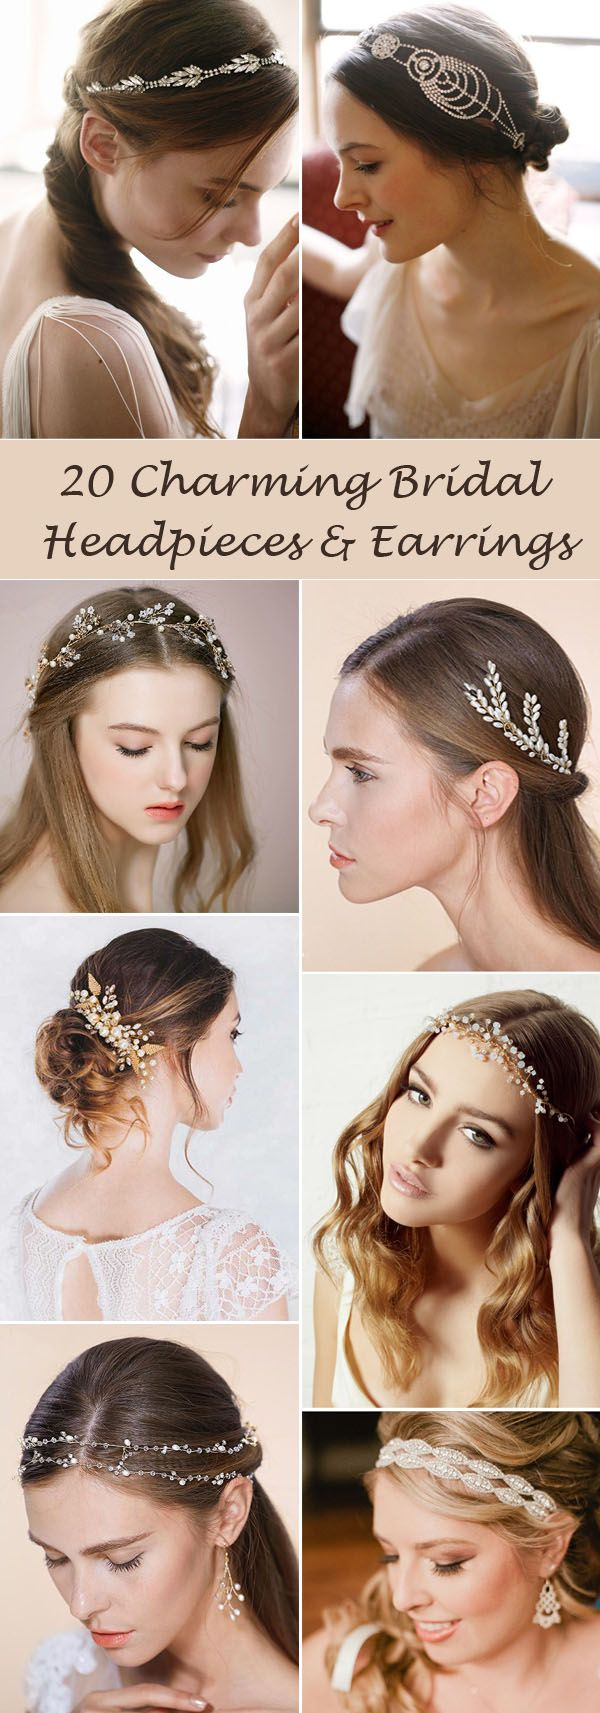 20 charming headpieces and earrings for all brides